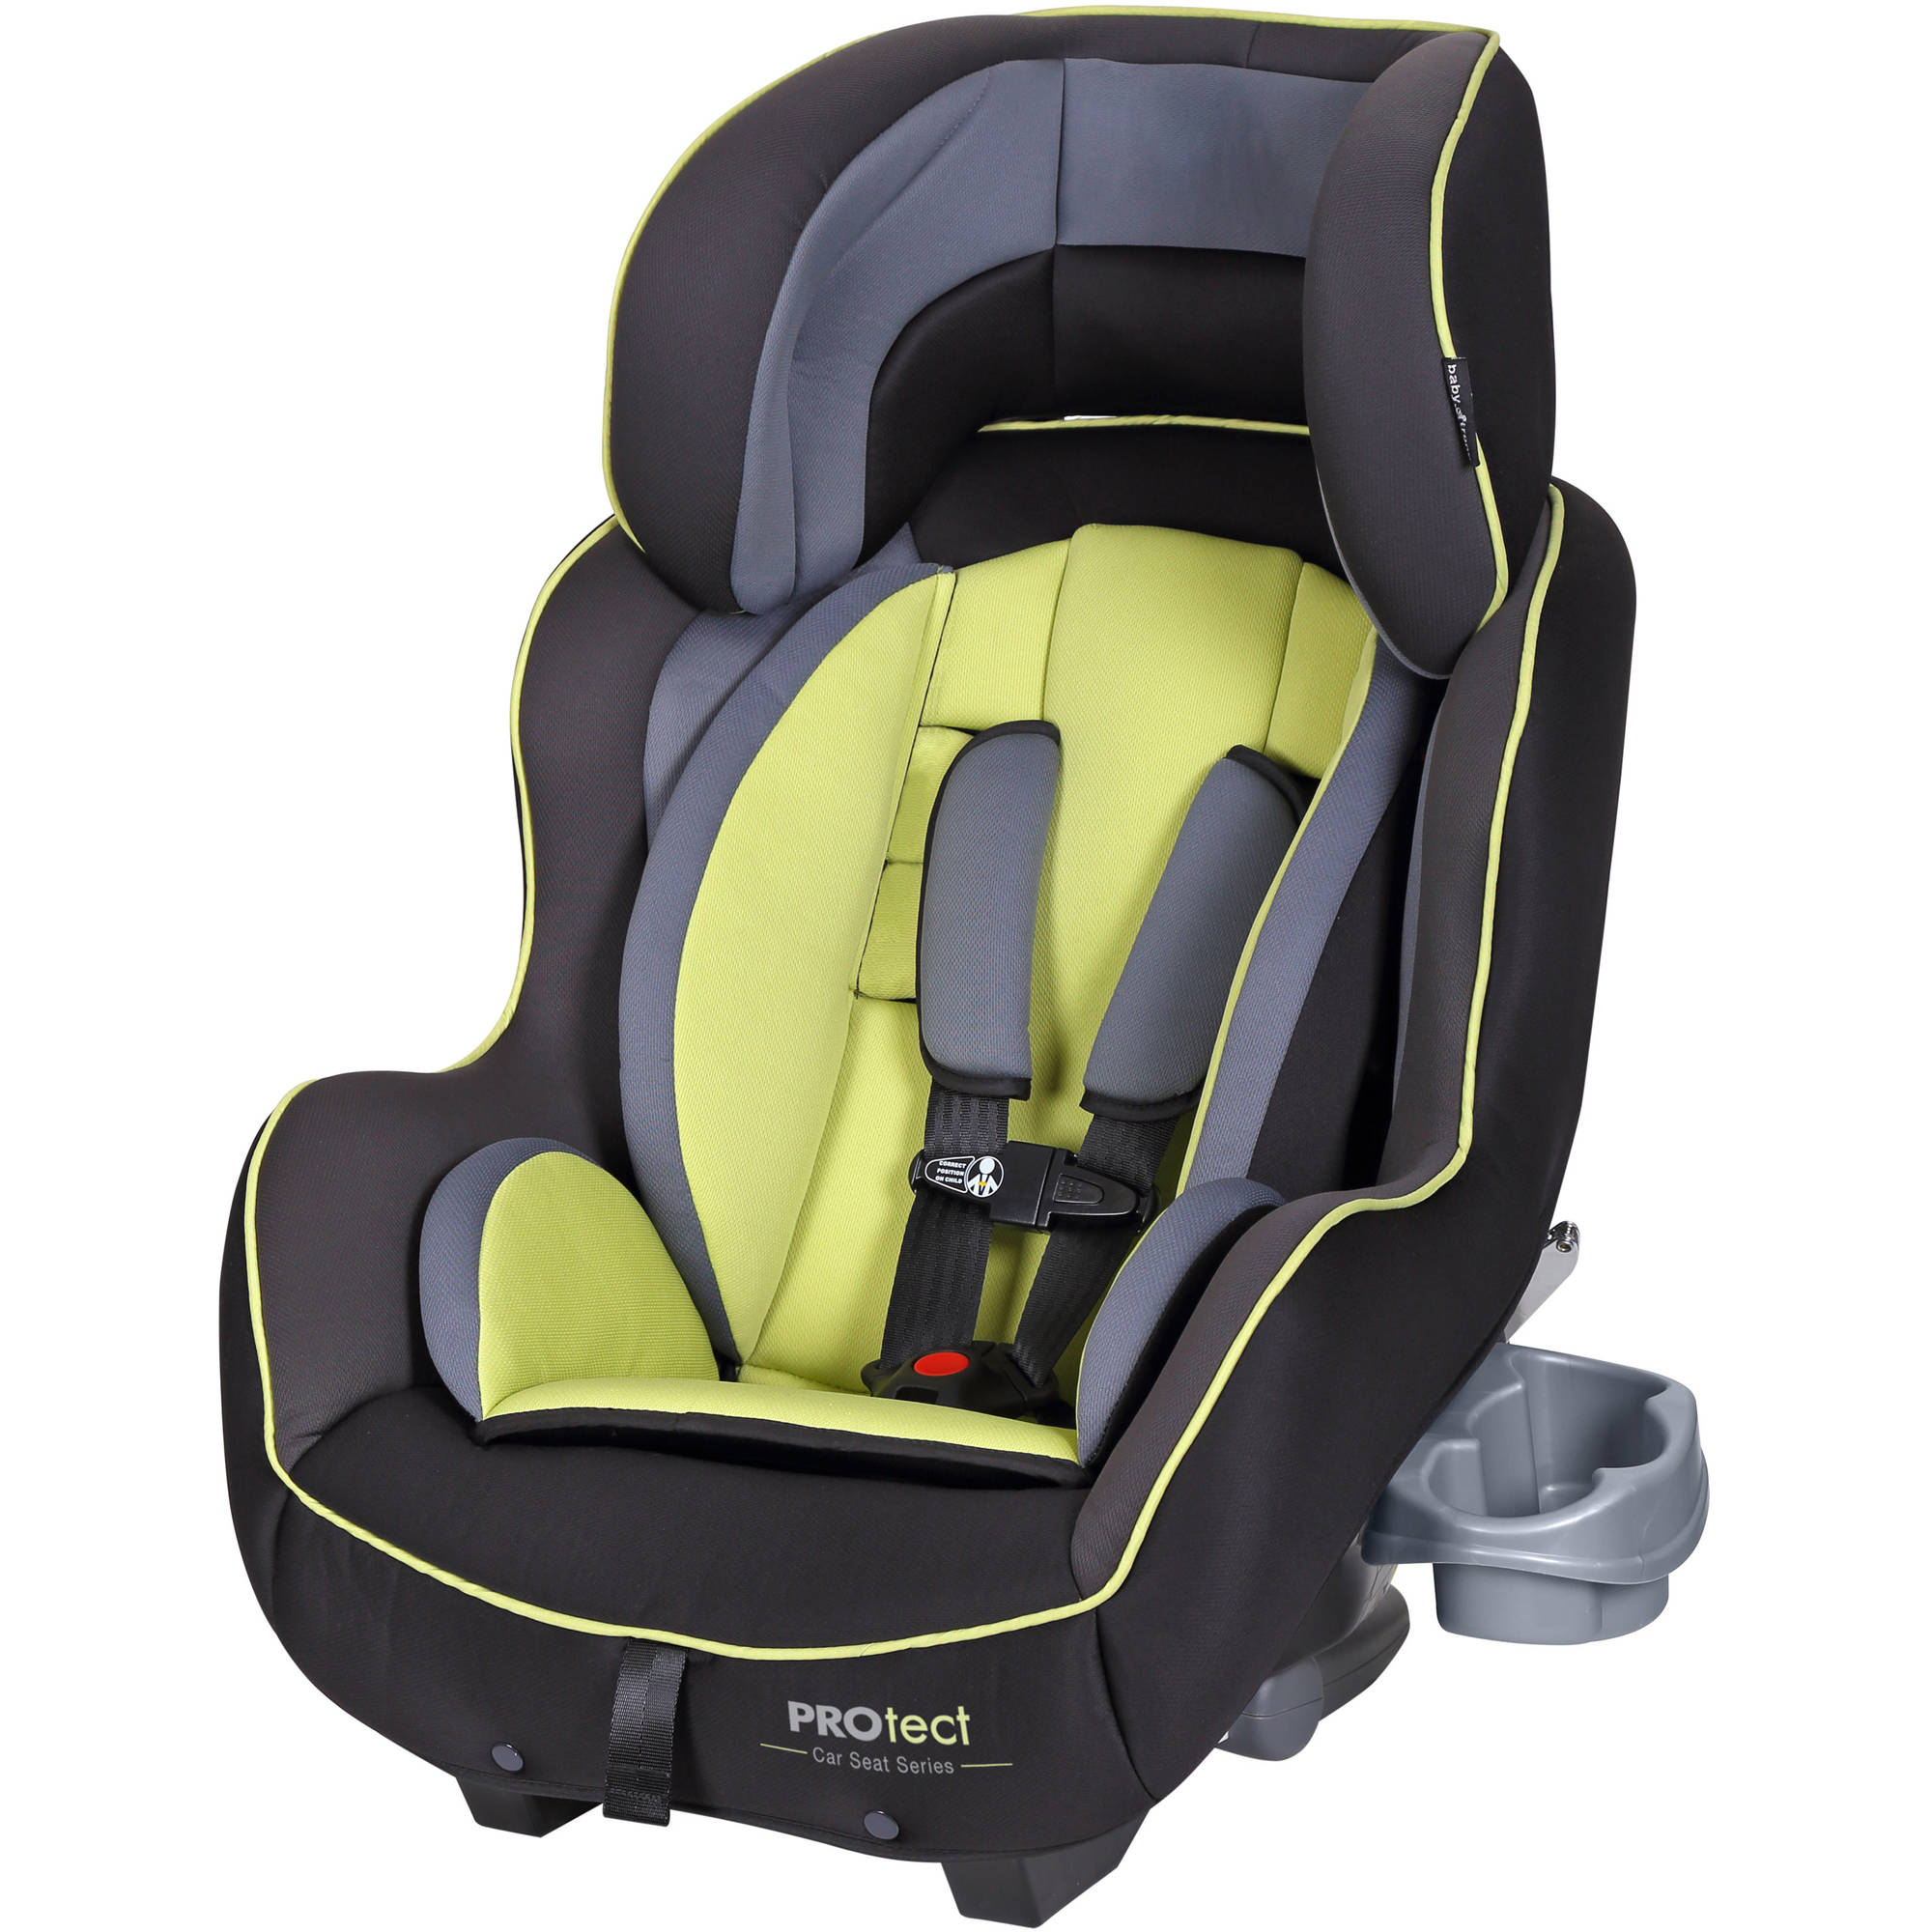 Toddler Convertible Car Seat Reviews